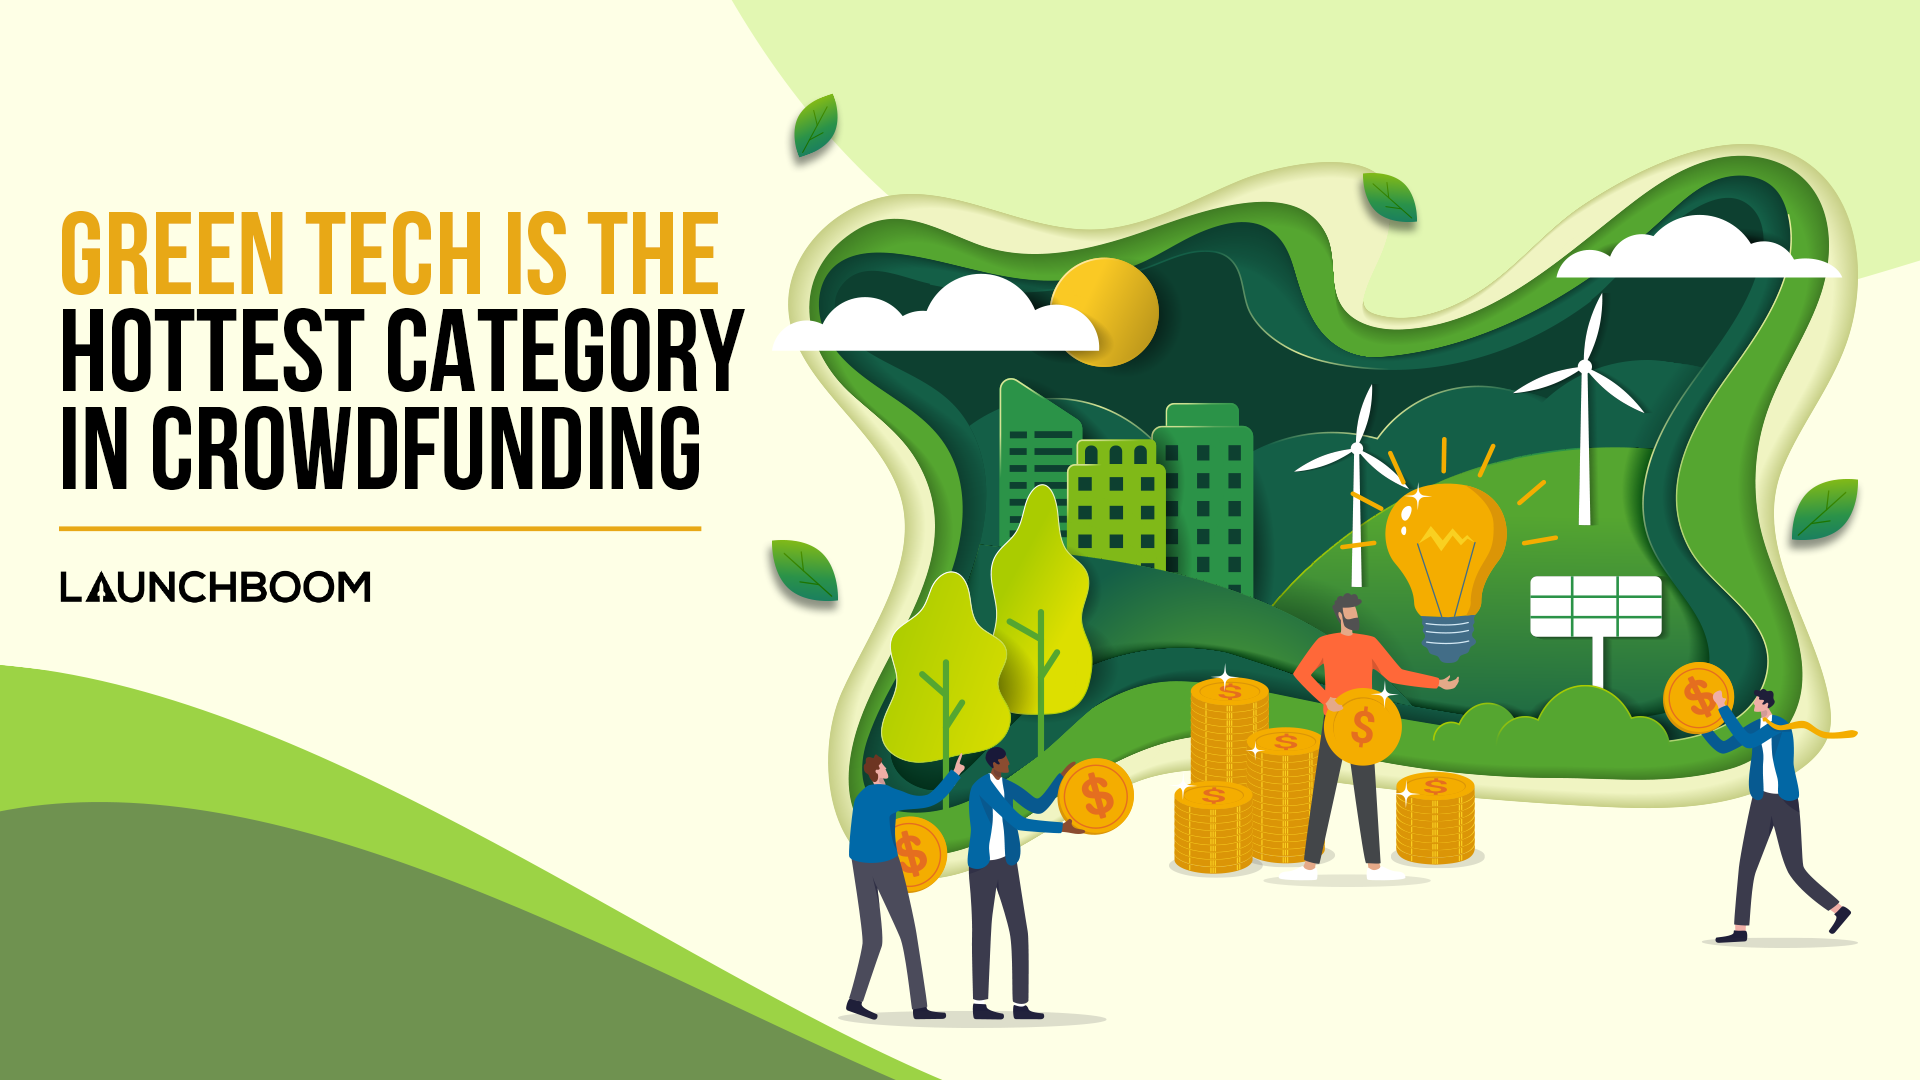 Green tech is the hottest category in crowdfunding